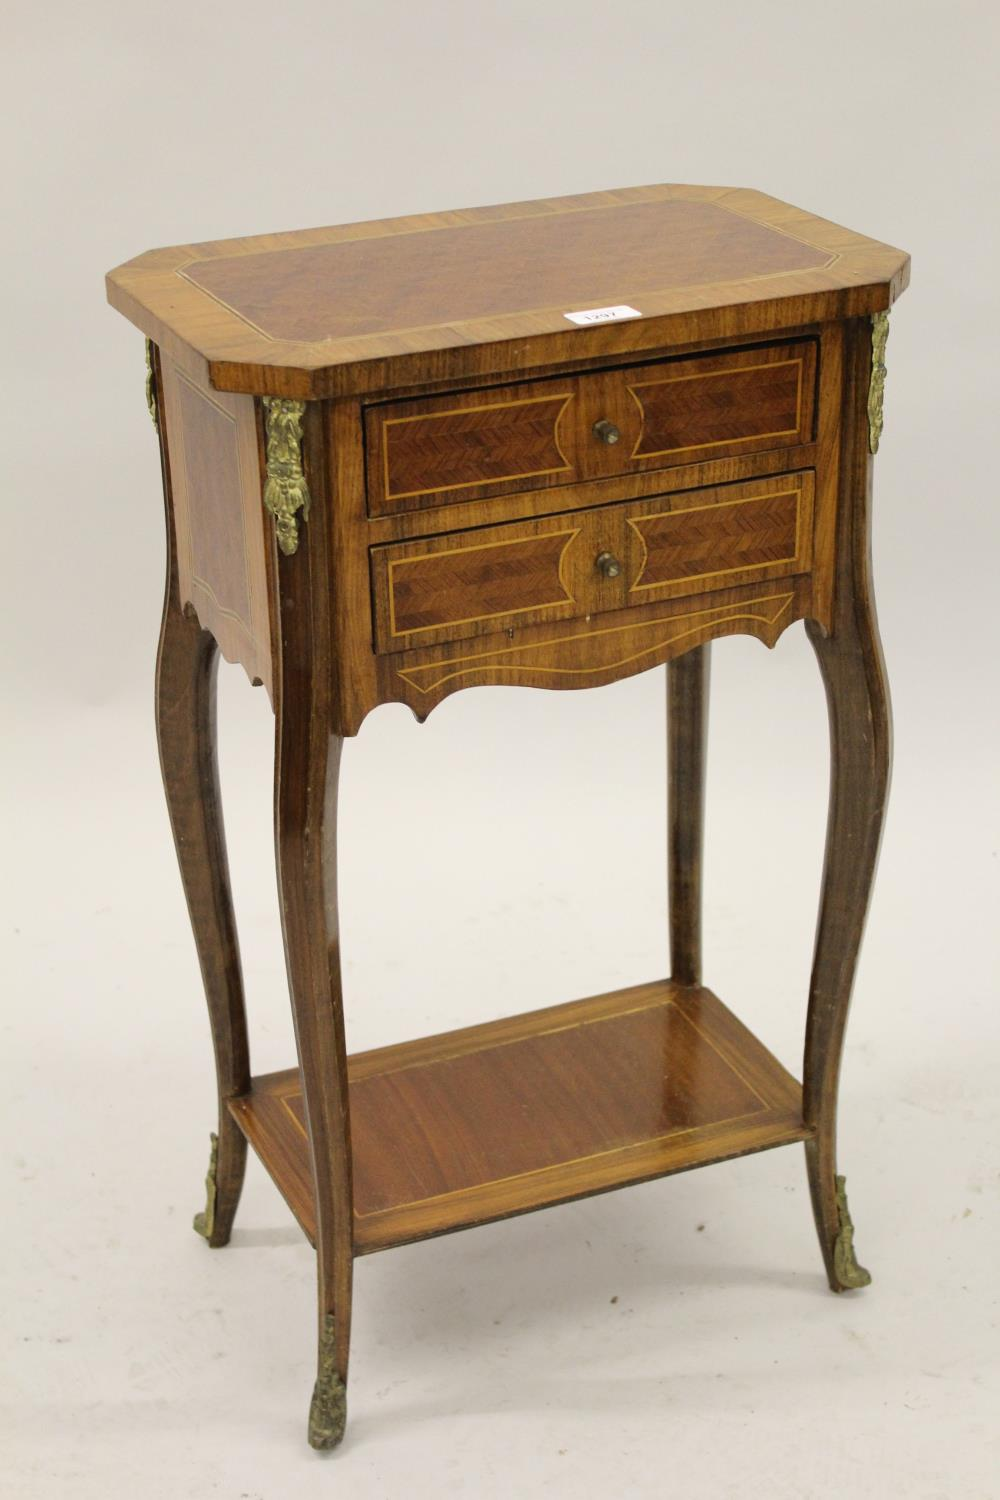 Reproduction French Kingwood side / occasional table, the irregular octagonal top above two